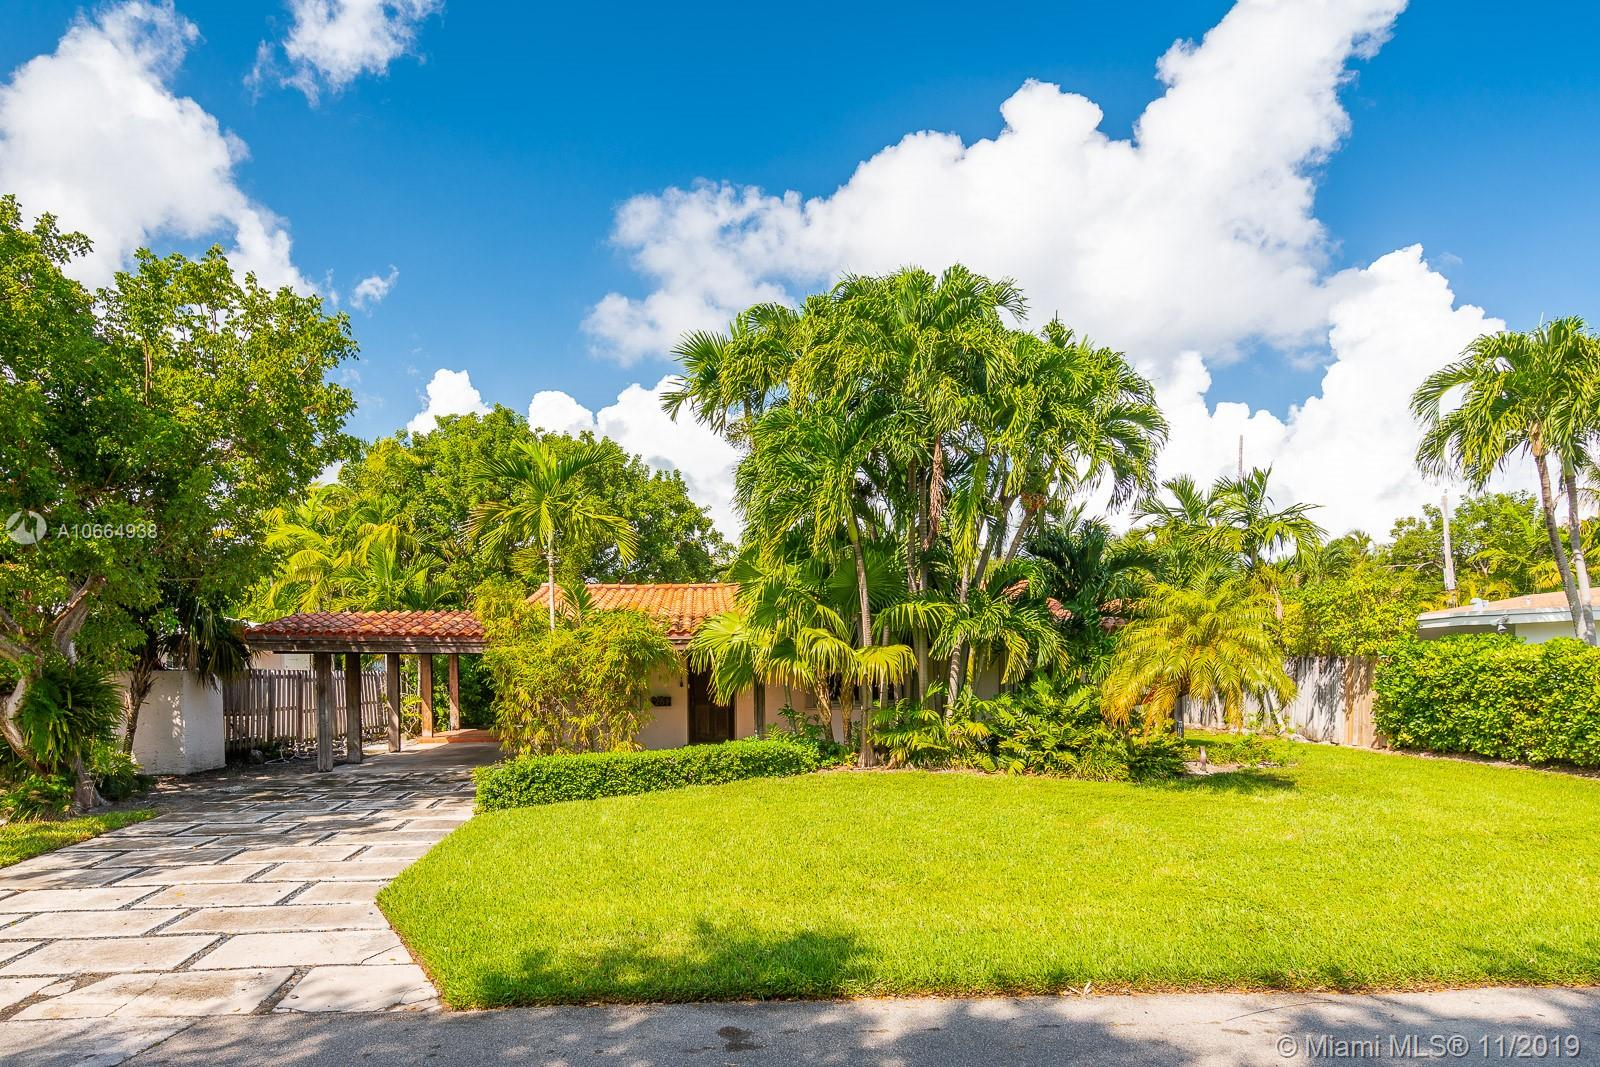 261 Greenwood Dr, Key Biscayne, Florida